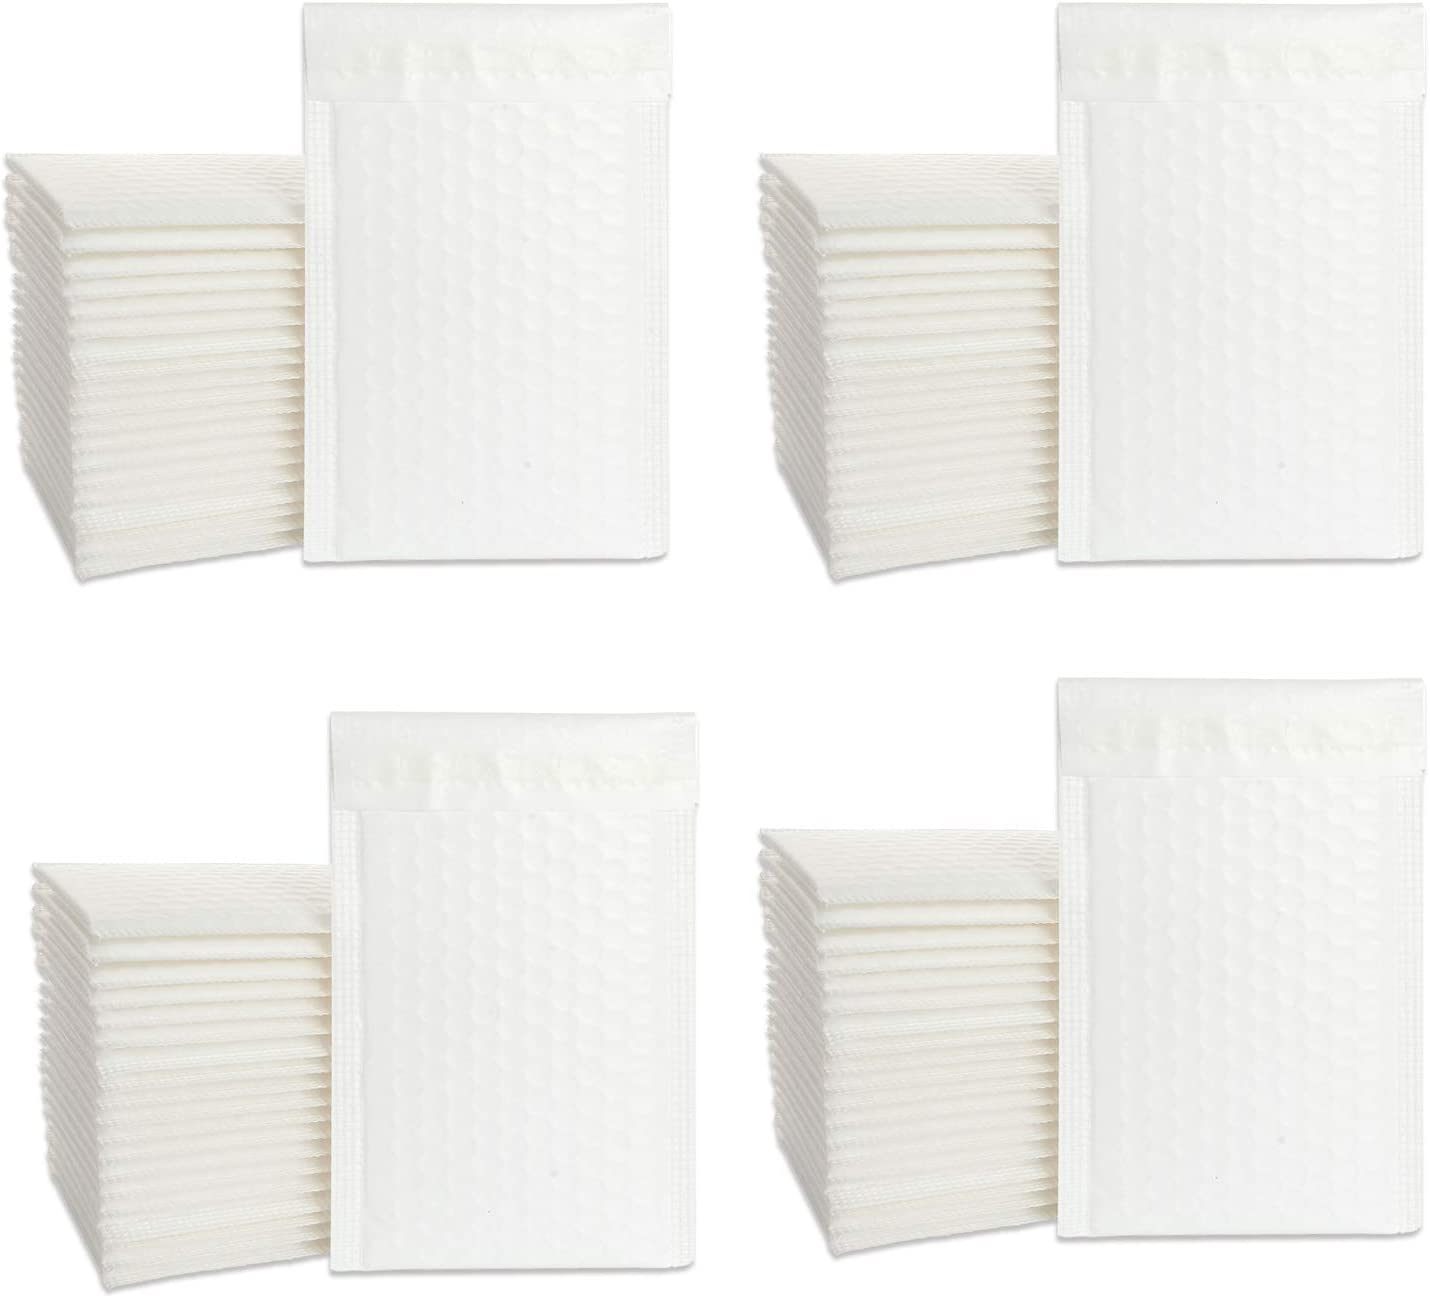 Bubble Mailers 4x7, 80 PCS Bubble Envelopes, Bubble Packaging Envelopes, Padded Envelopes 4x7, Bubble Poly Mailers Perfect for Packing Express Delivery and Protecting Fragile Goods(White)